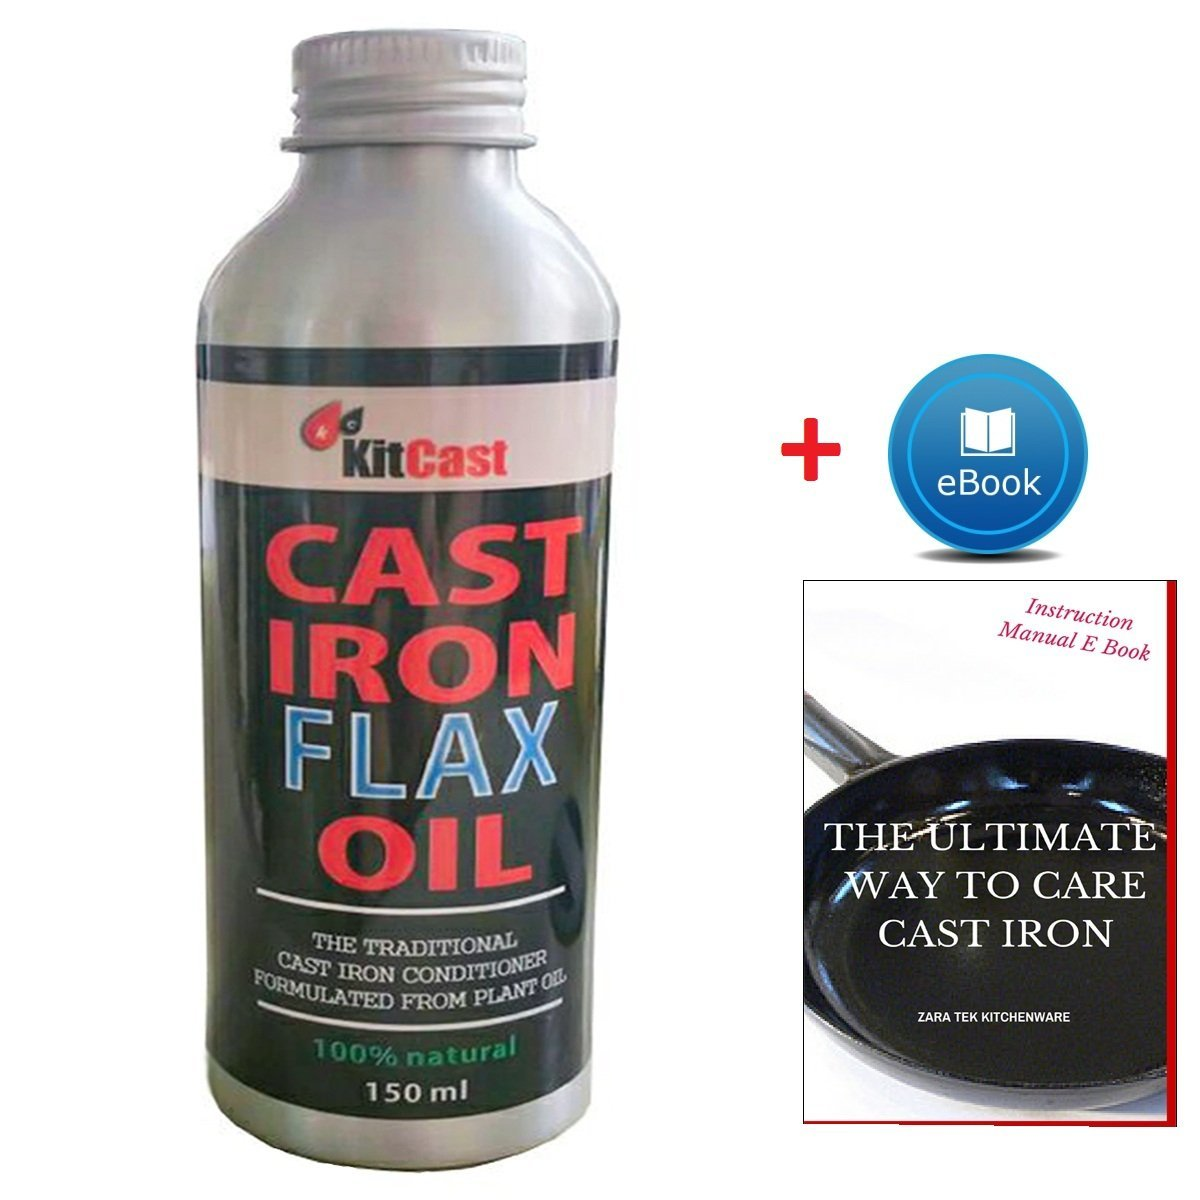 KitCast- Traditional Cast Iron Conditioner or Cast Iron Oil for Cast Iron Cookware Cleaning Regular Maintenance and Seasoning 100% Natural and Developed from Flax Seed Oil